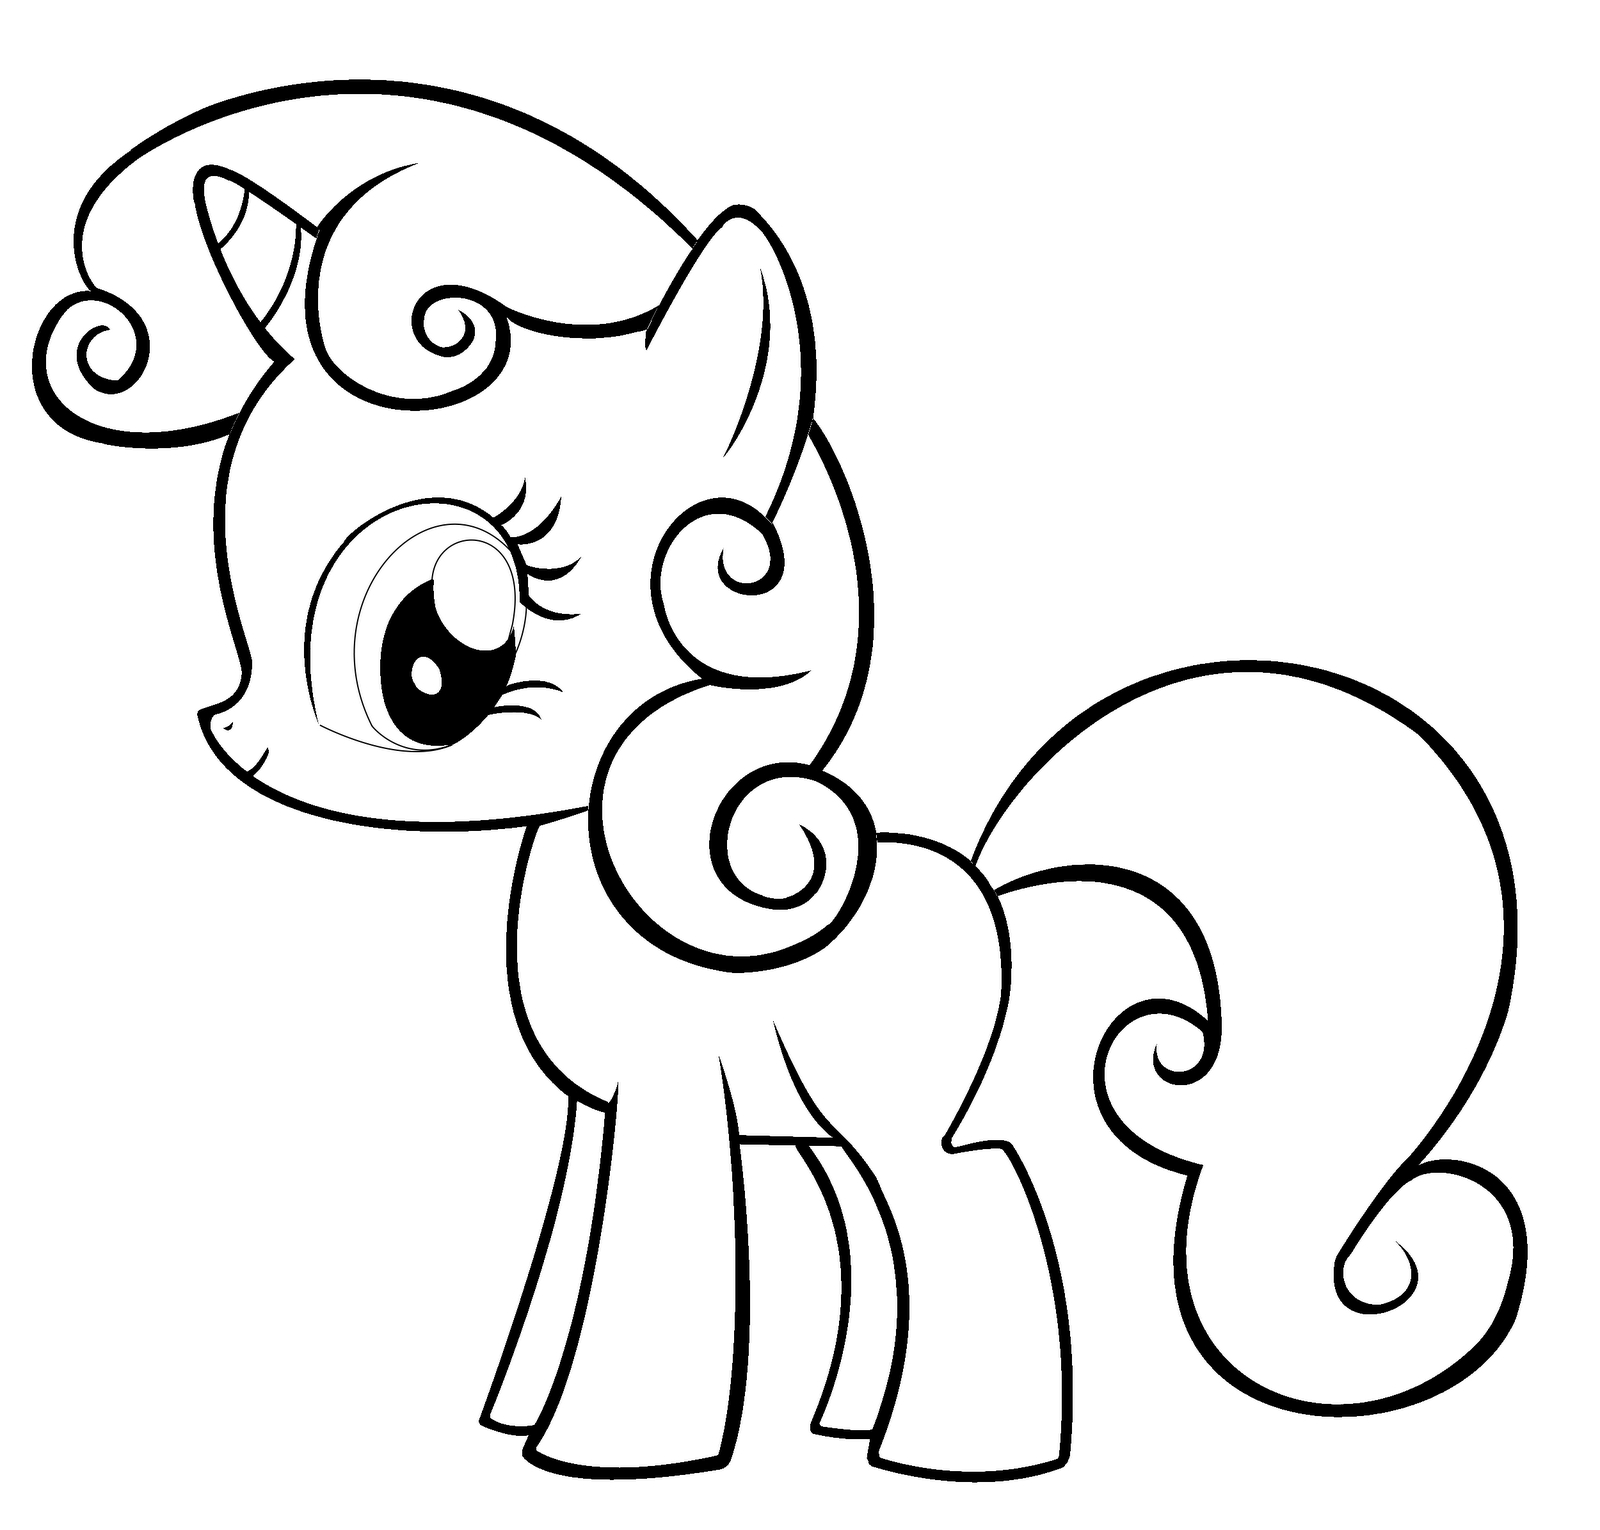 Mlp Coloring Pages Free Printable My Little Pony Coloring Pages ...   1530x1600